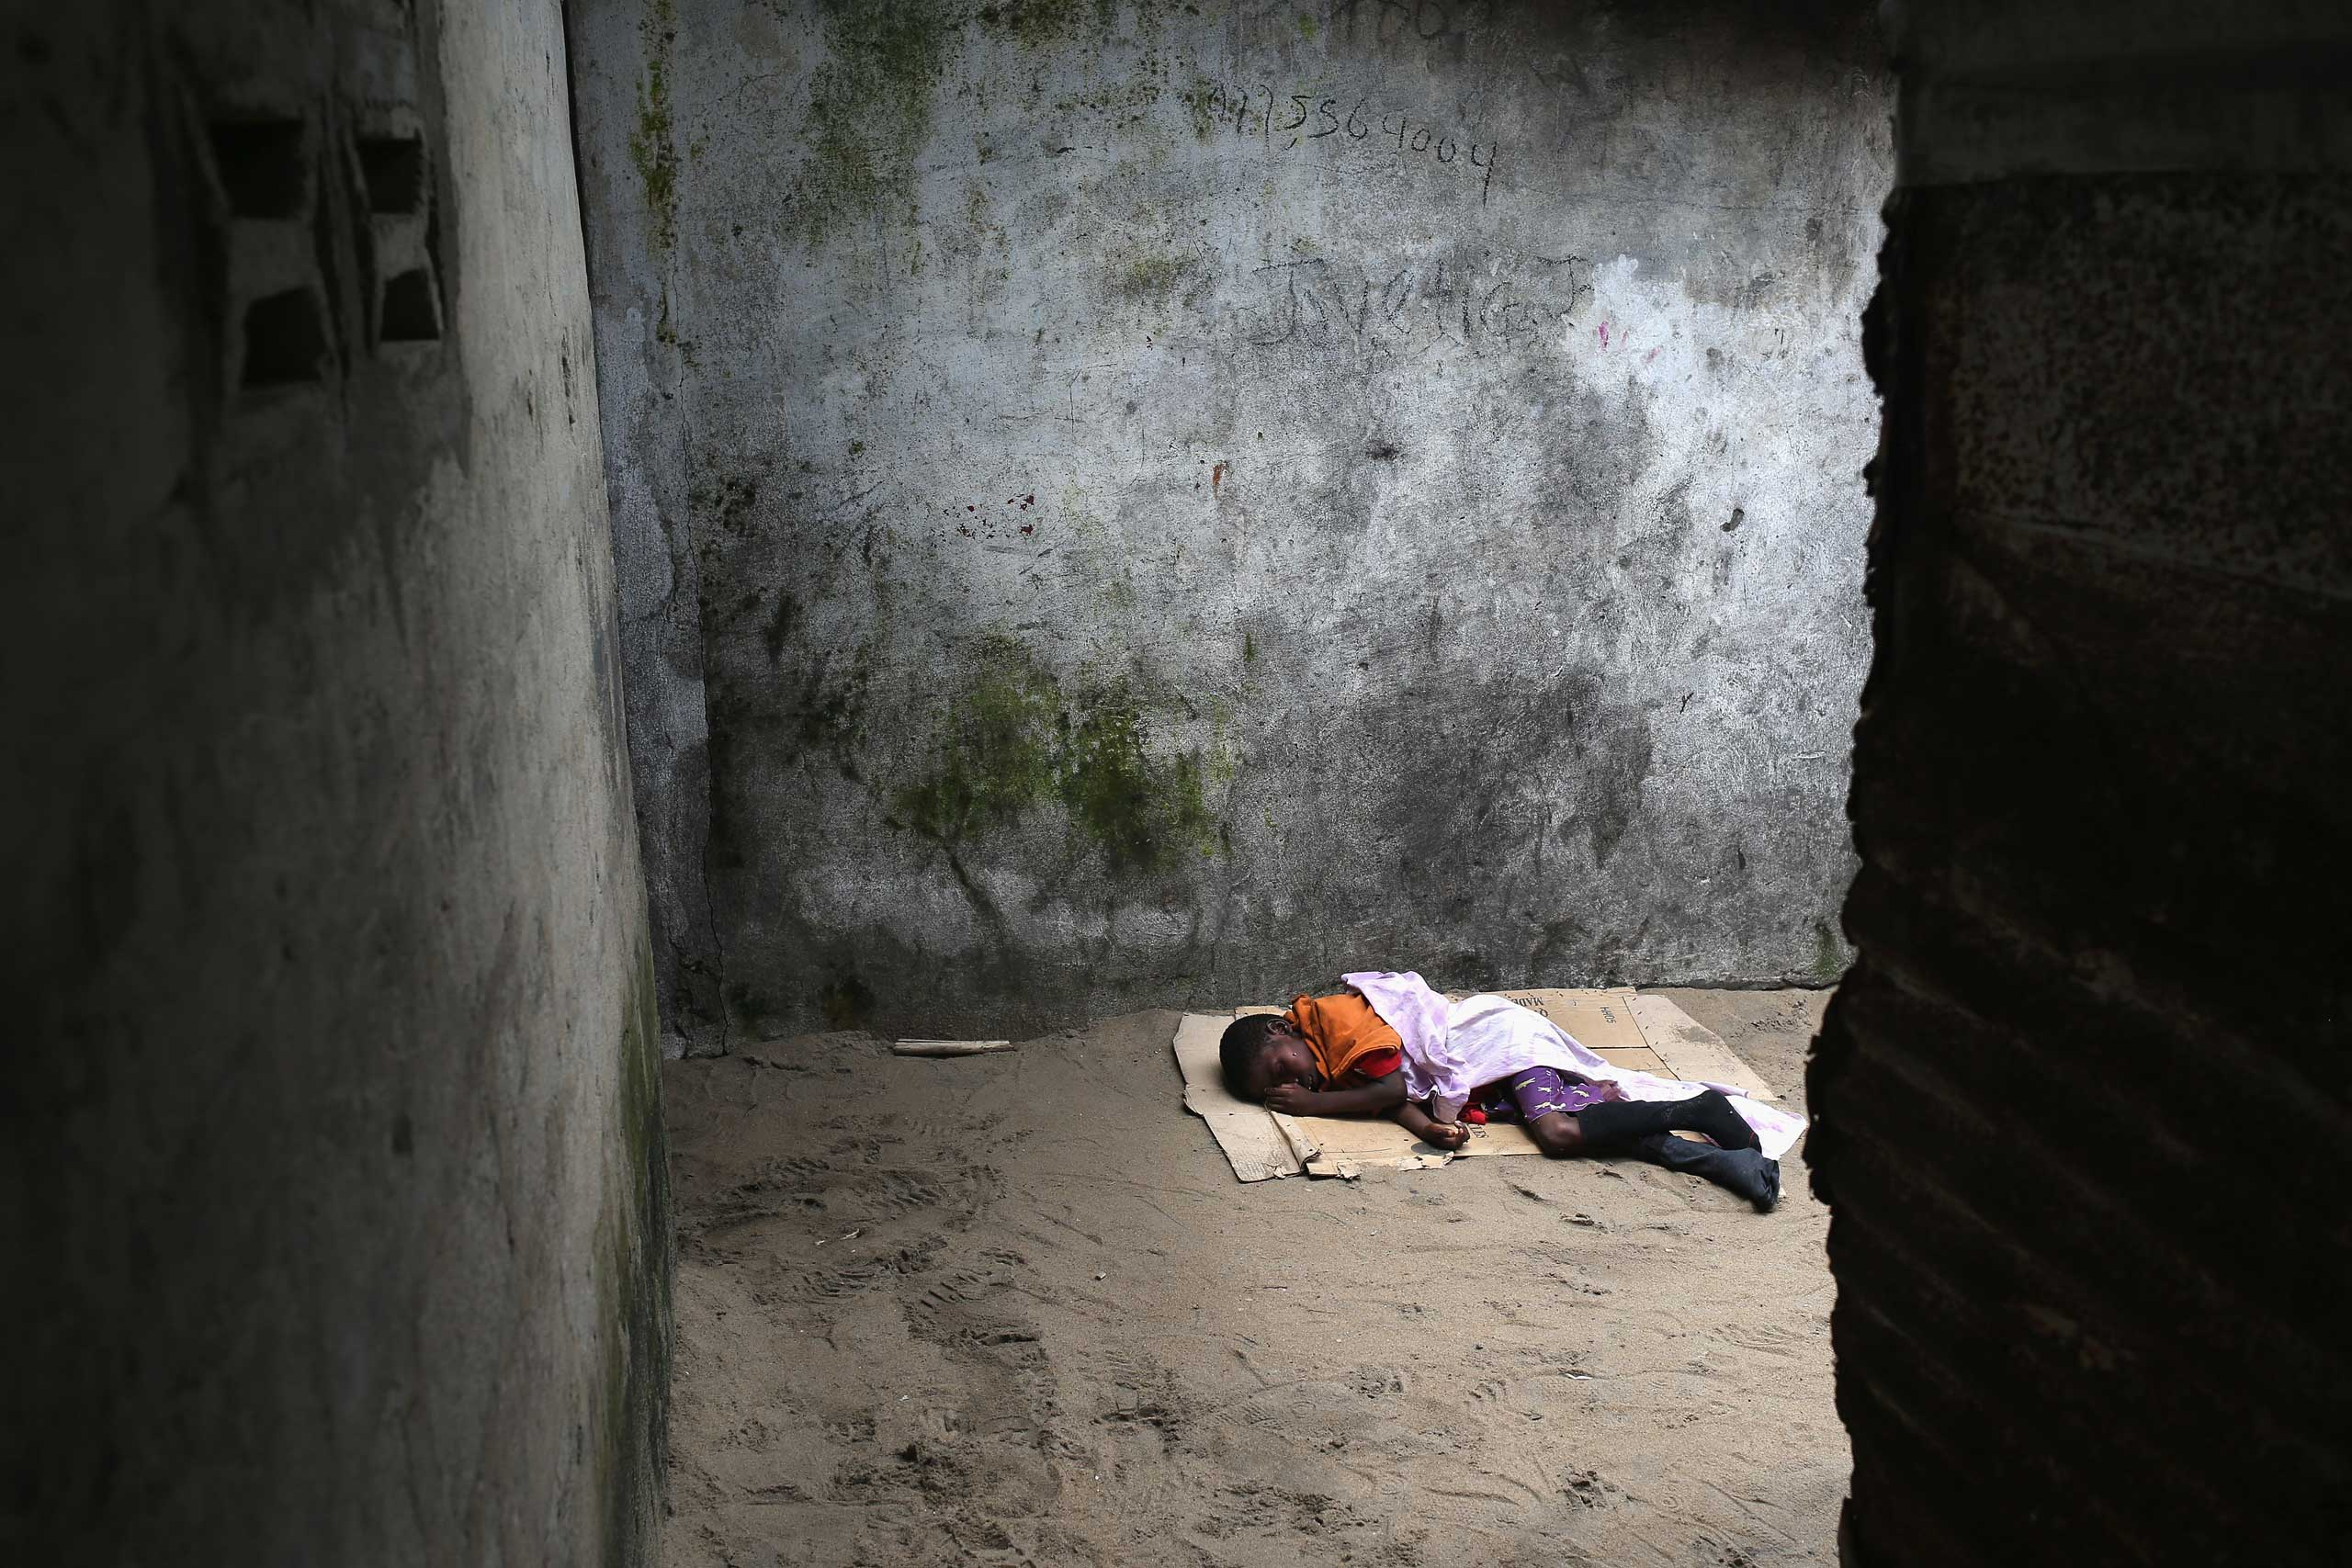 A very sick boy, 10, lies in a back alley of the West Point slum in Monrovia on Aug. 19, 2014. The boy was one of the patients who was pulled out of a holding center for suspected Ebola patients when the facility was overrun by a mob on Saturday. A local clinic refused to treat the boy on Tuesday, according to residents, because of the danger of infection.